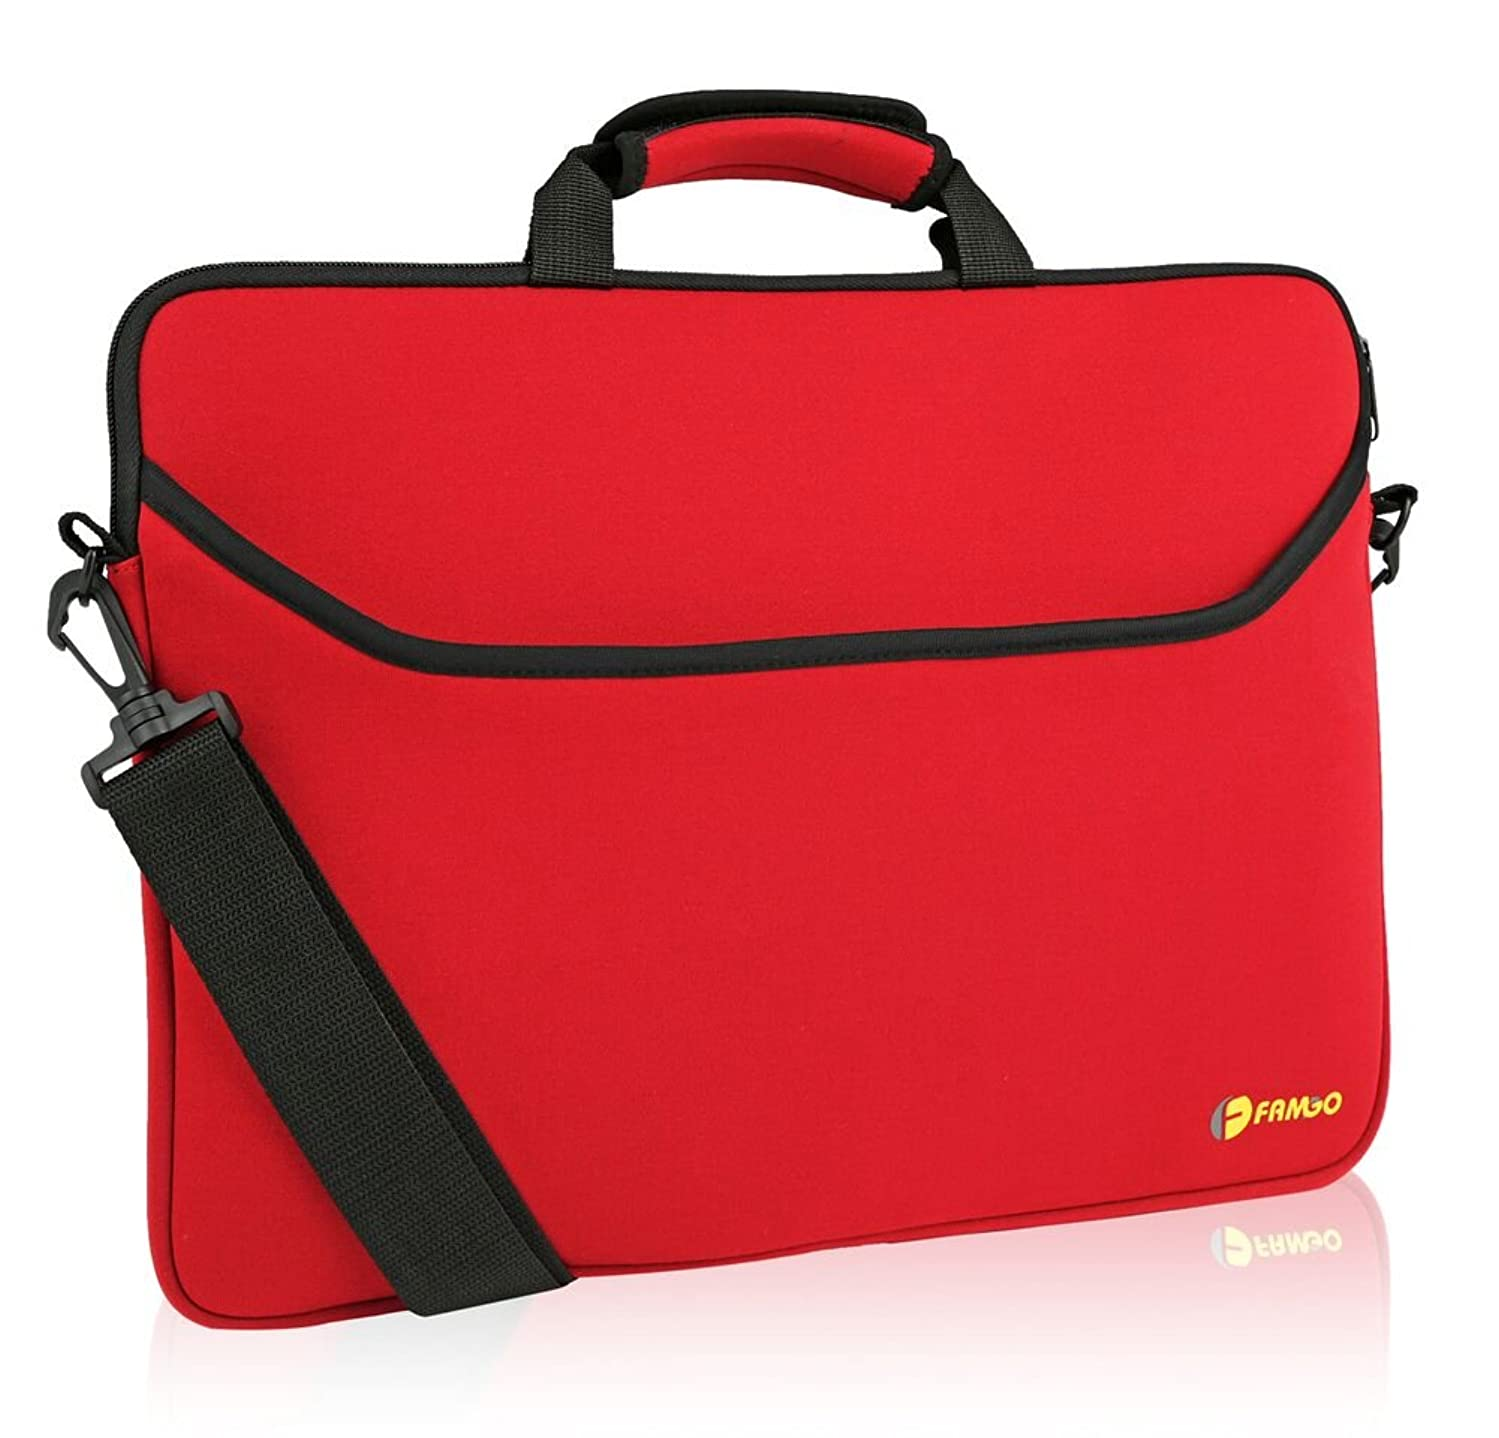 """15.6 inch Water-resistant Neoprene Laptop/Notebook Computer Sleeve Case/for Acer/Asus/Dell/Fujitsu/Lenovo/HP/Samsung/Sony/Toshiba, with convenient """"HANDLE & SHOULDER STRAP"""" for easy carrying (Red)"""